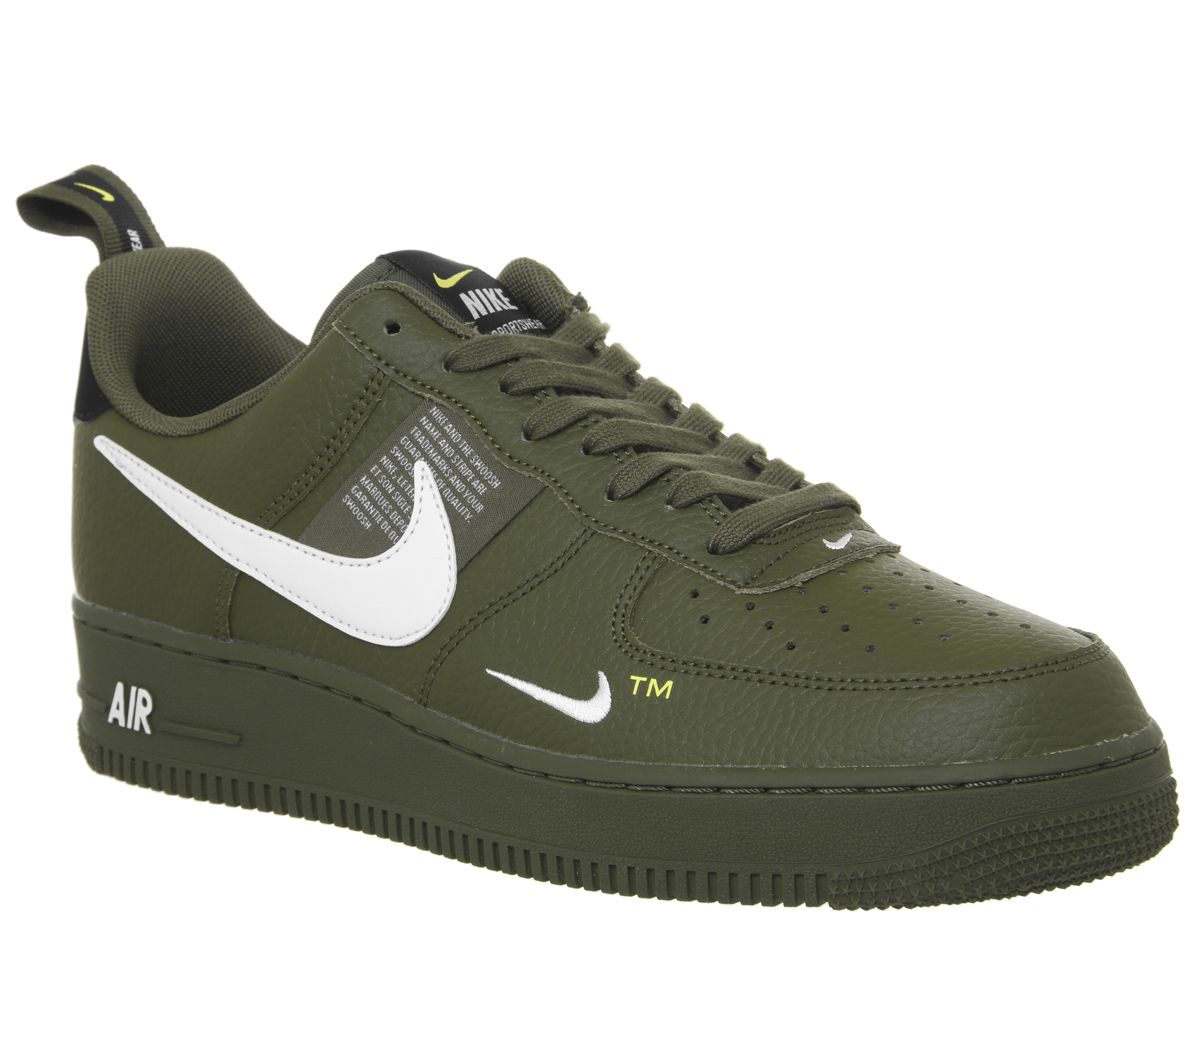 wholesale dealer 2f748 b46e5 Nike Air Force 1 Utility Trainers Olive Canvas White Black Tour ...